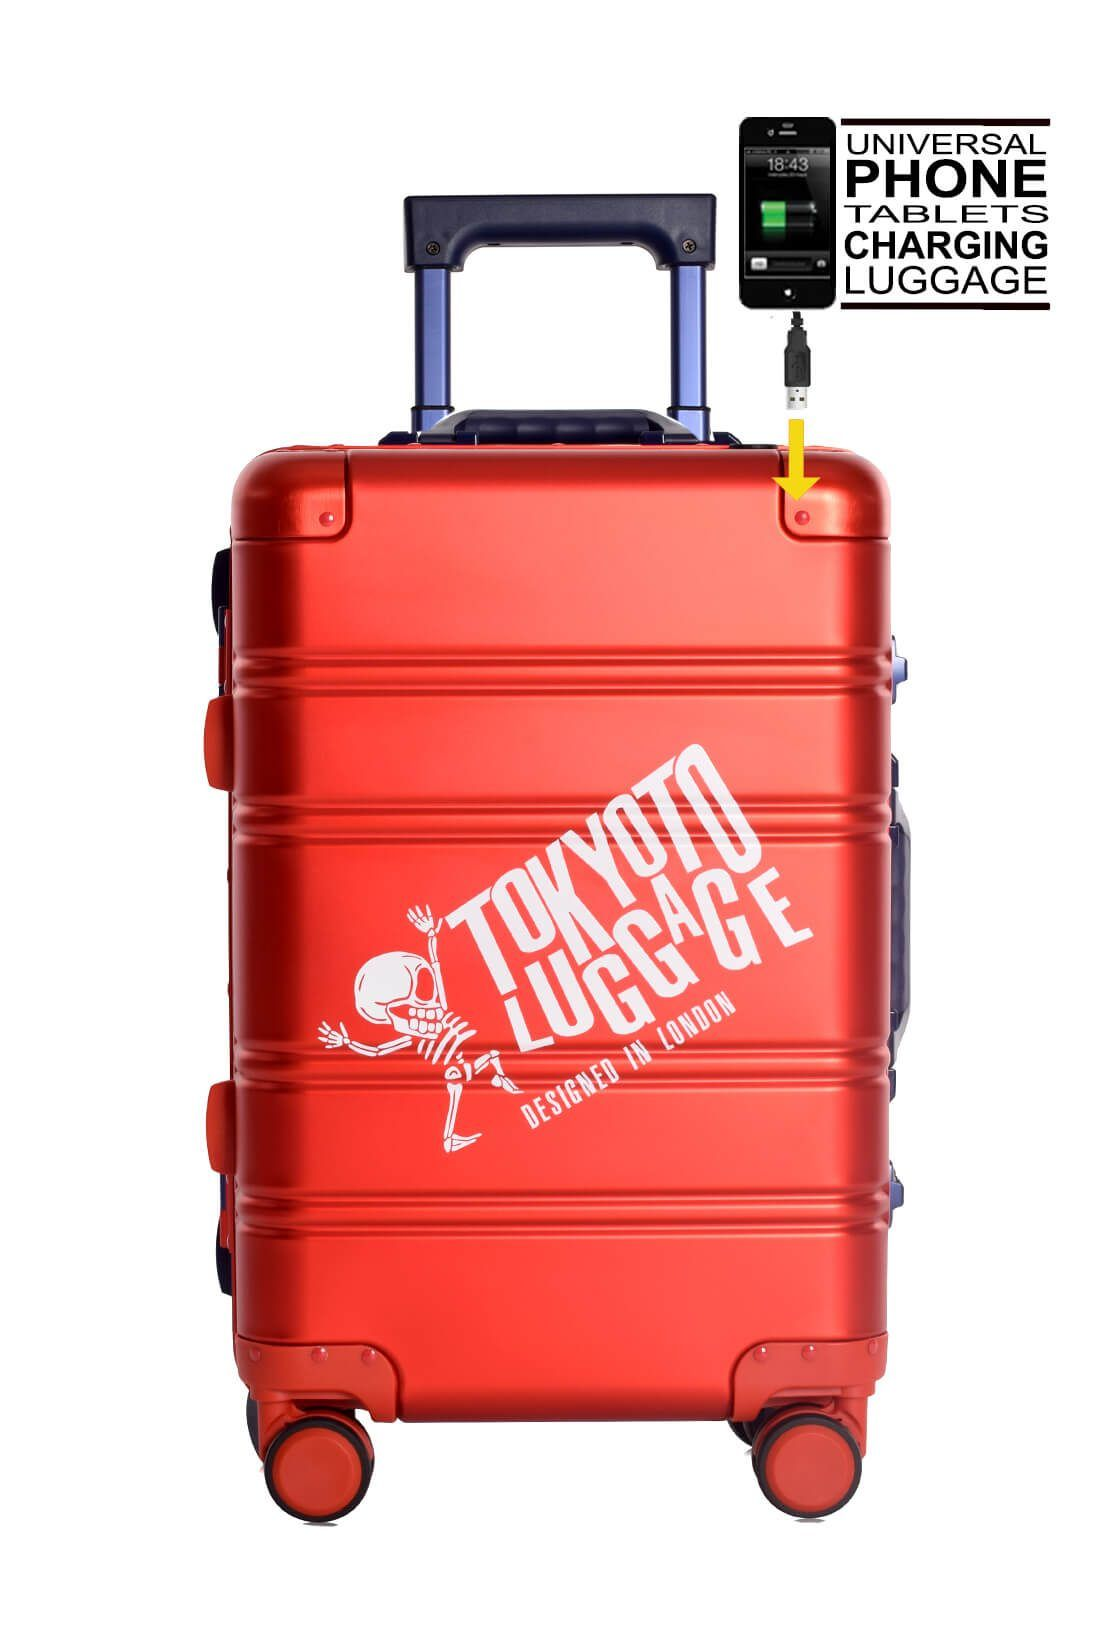 Aluminium Hand Cabin Luggage Premium Suitcase Trolley TOKYOTO LUGGAGE Model RED BLUE LOGO